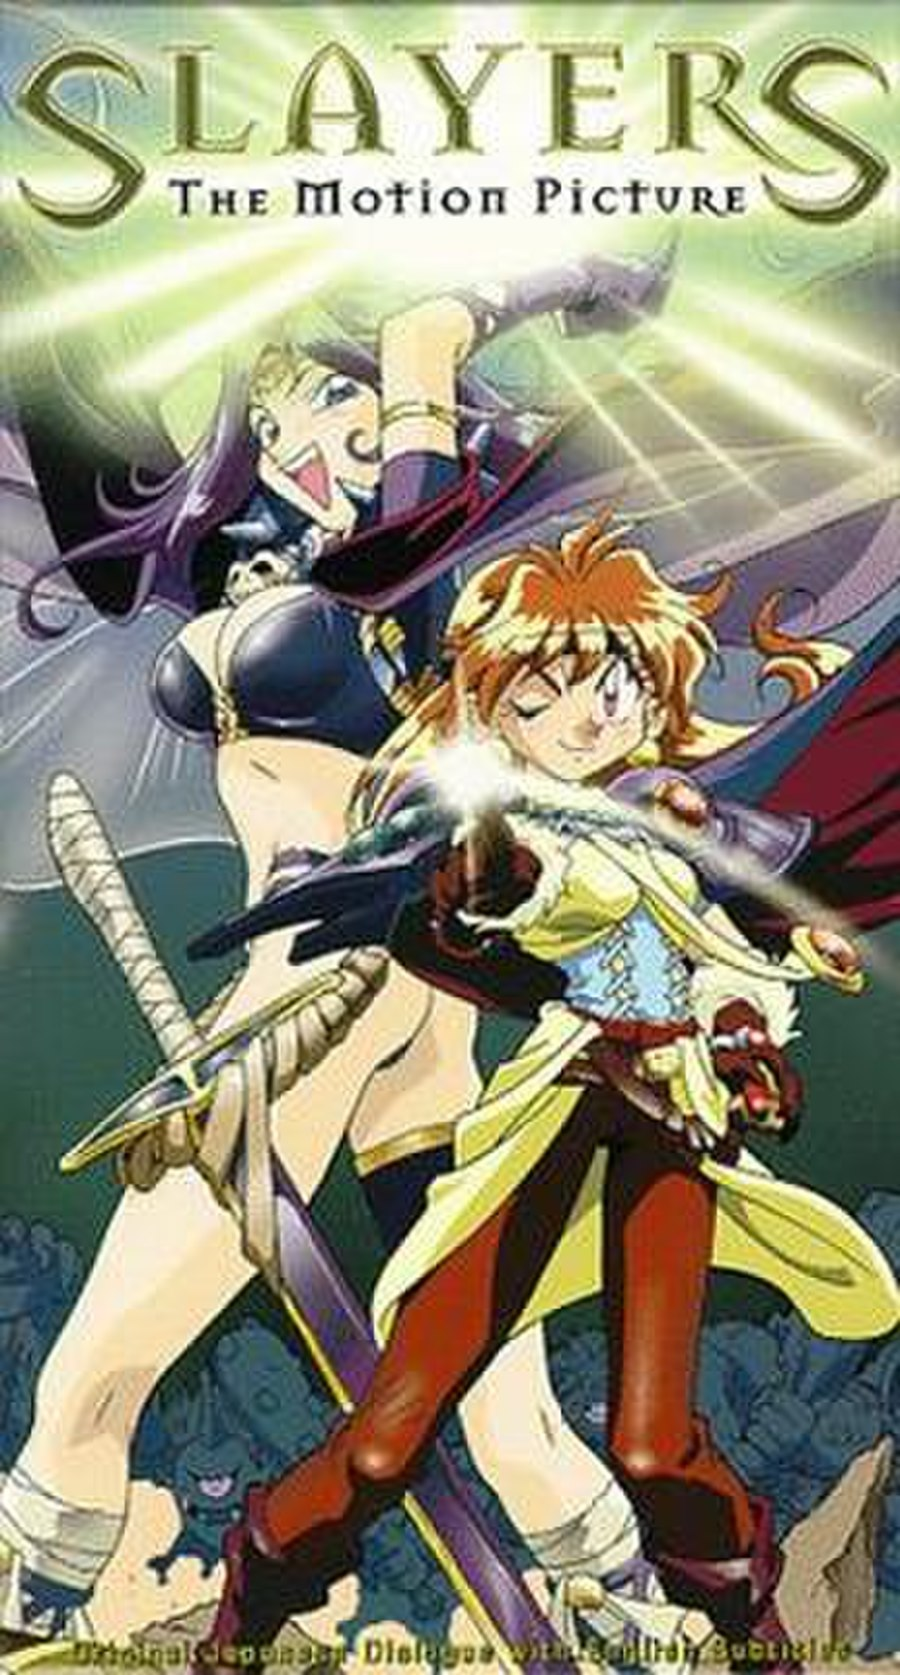 Slayers – The Motion Picture